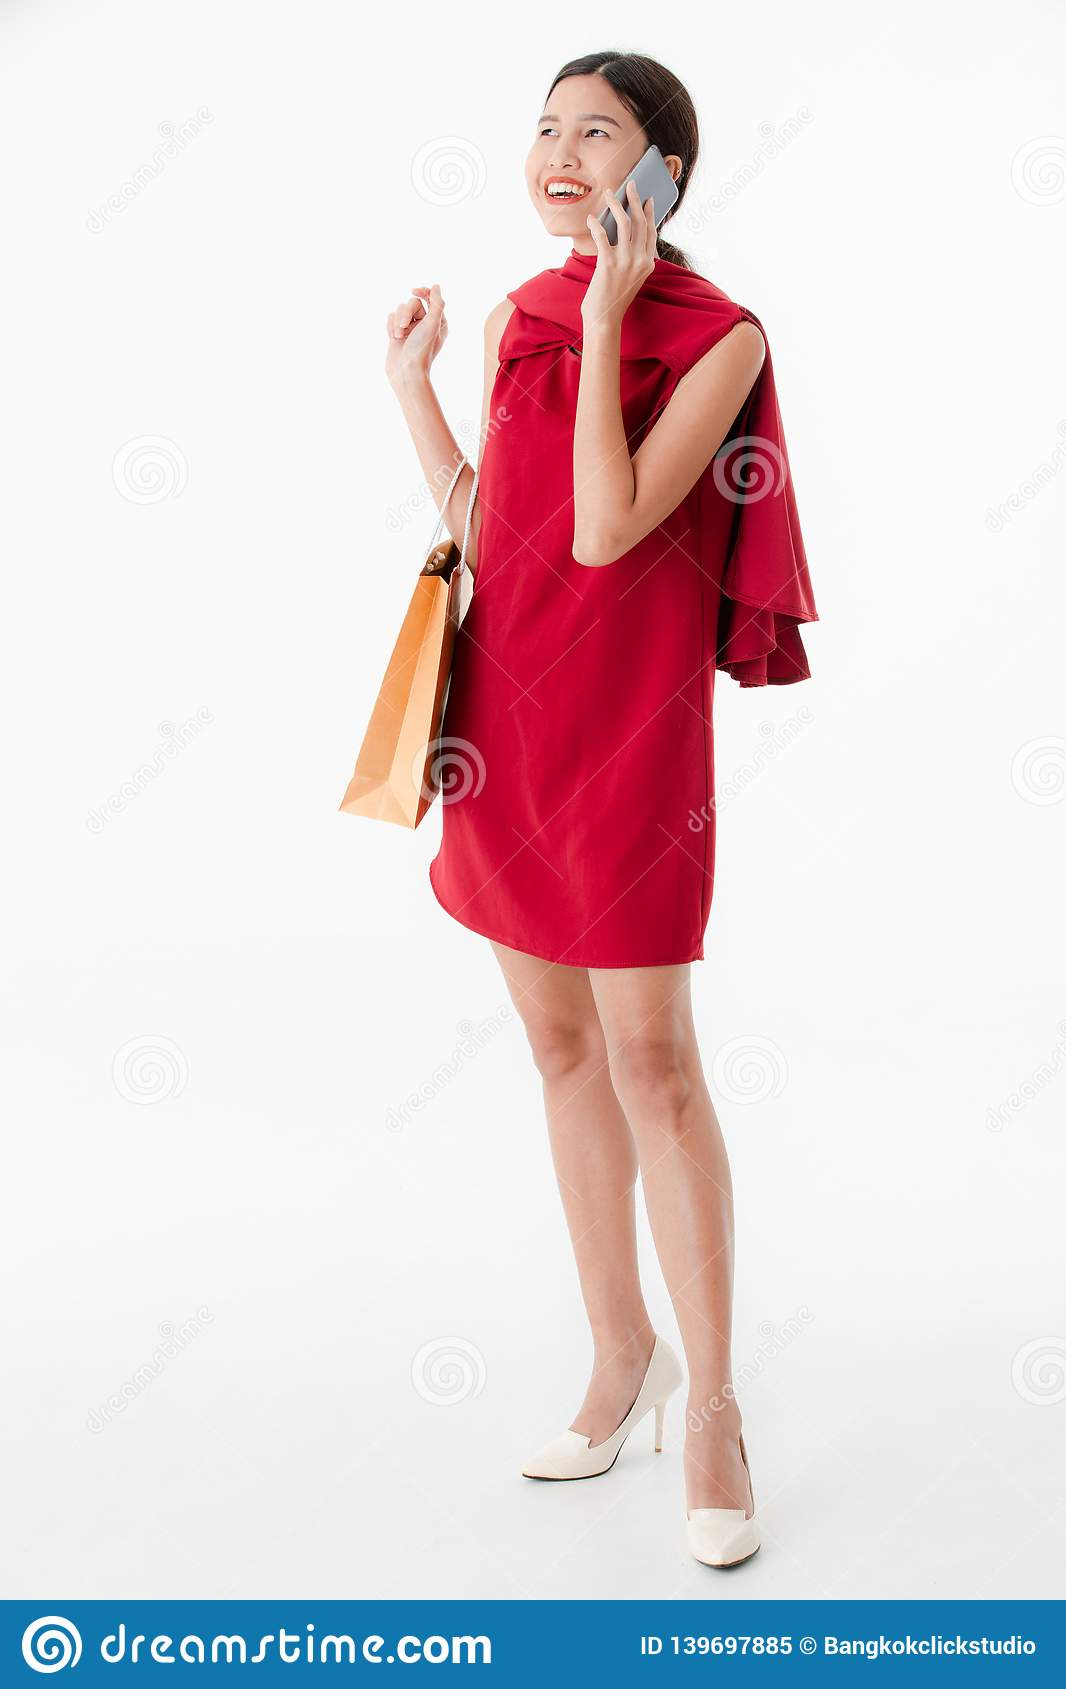 2dd3627469 Young lady in red dress stock image. Image of elegant - 139697885